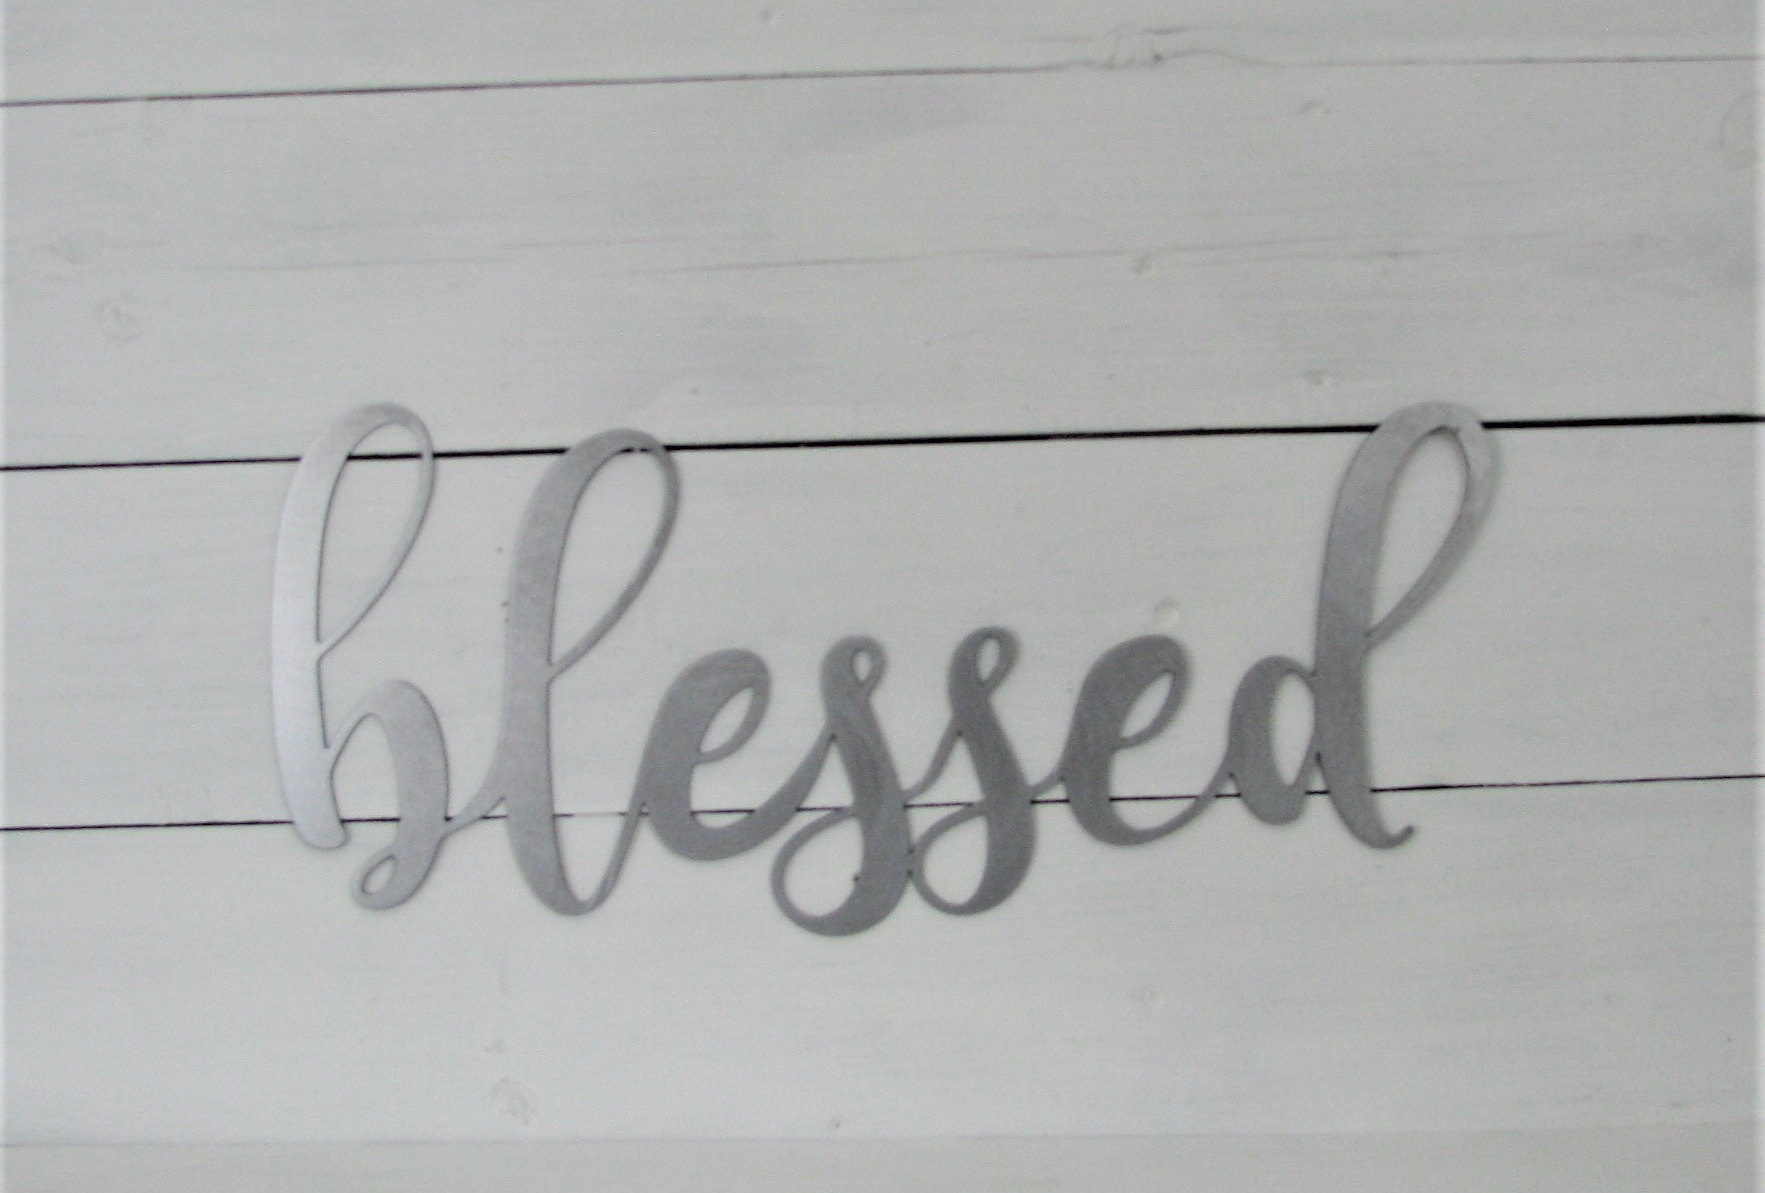 2019 Blessed Steel Wall Decor Regarding Blessed Script Metal Word Wall Art Steel Metal Rustic Home (Gallery 12 of 20)